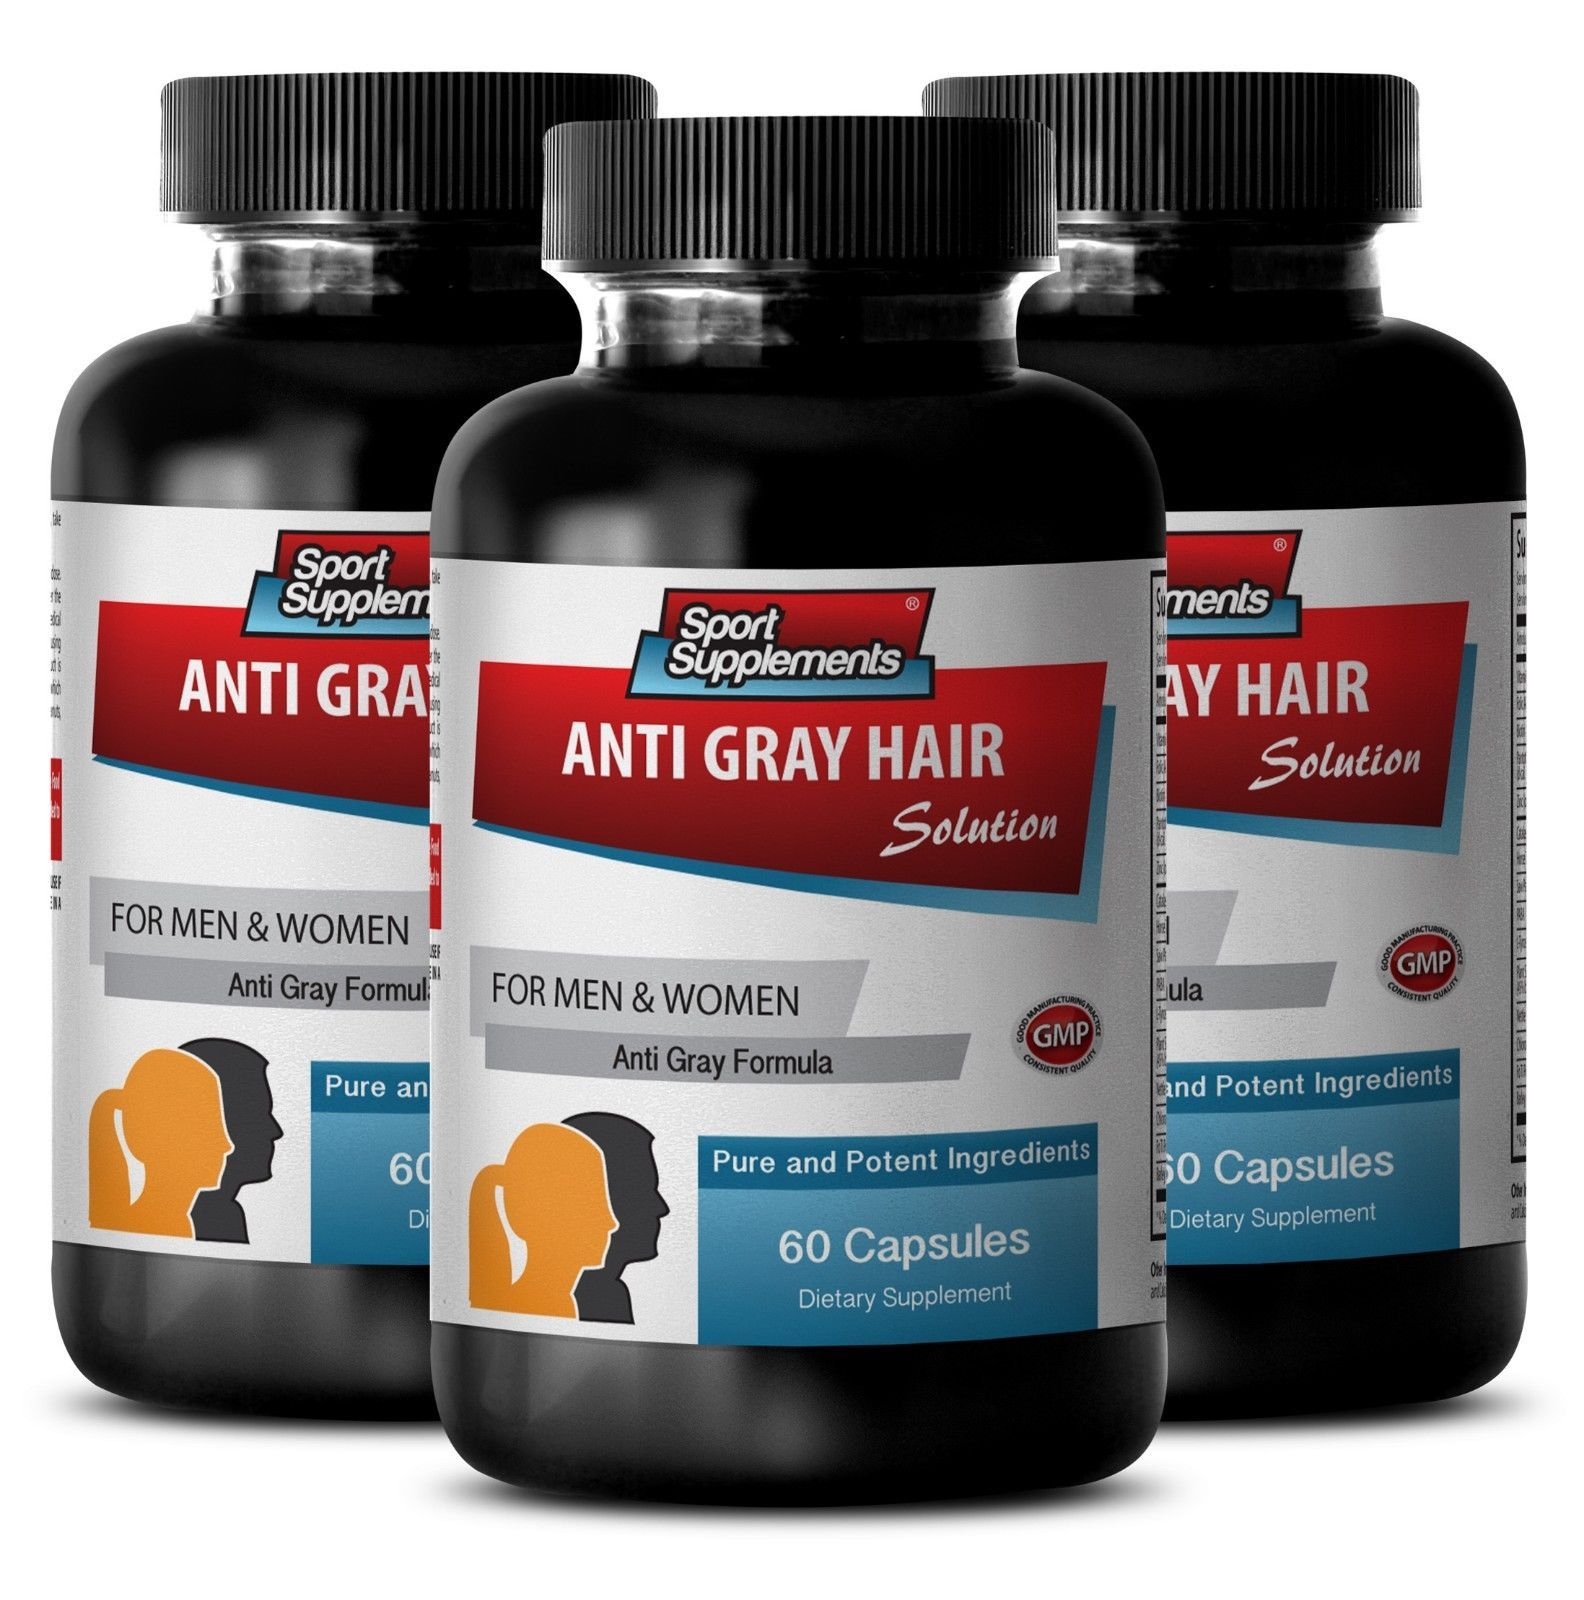 Saw Palmetto 1000 - Gray Hair Solution 1500mg - Make Hair Stronger 3B image 1